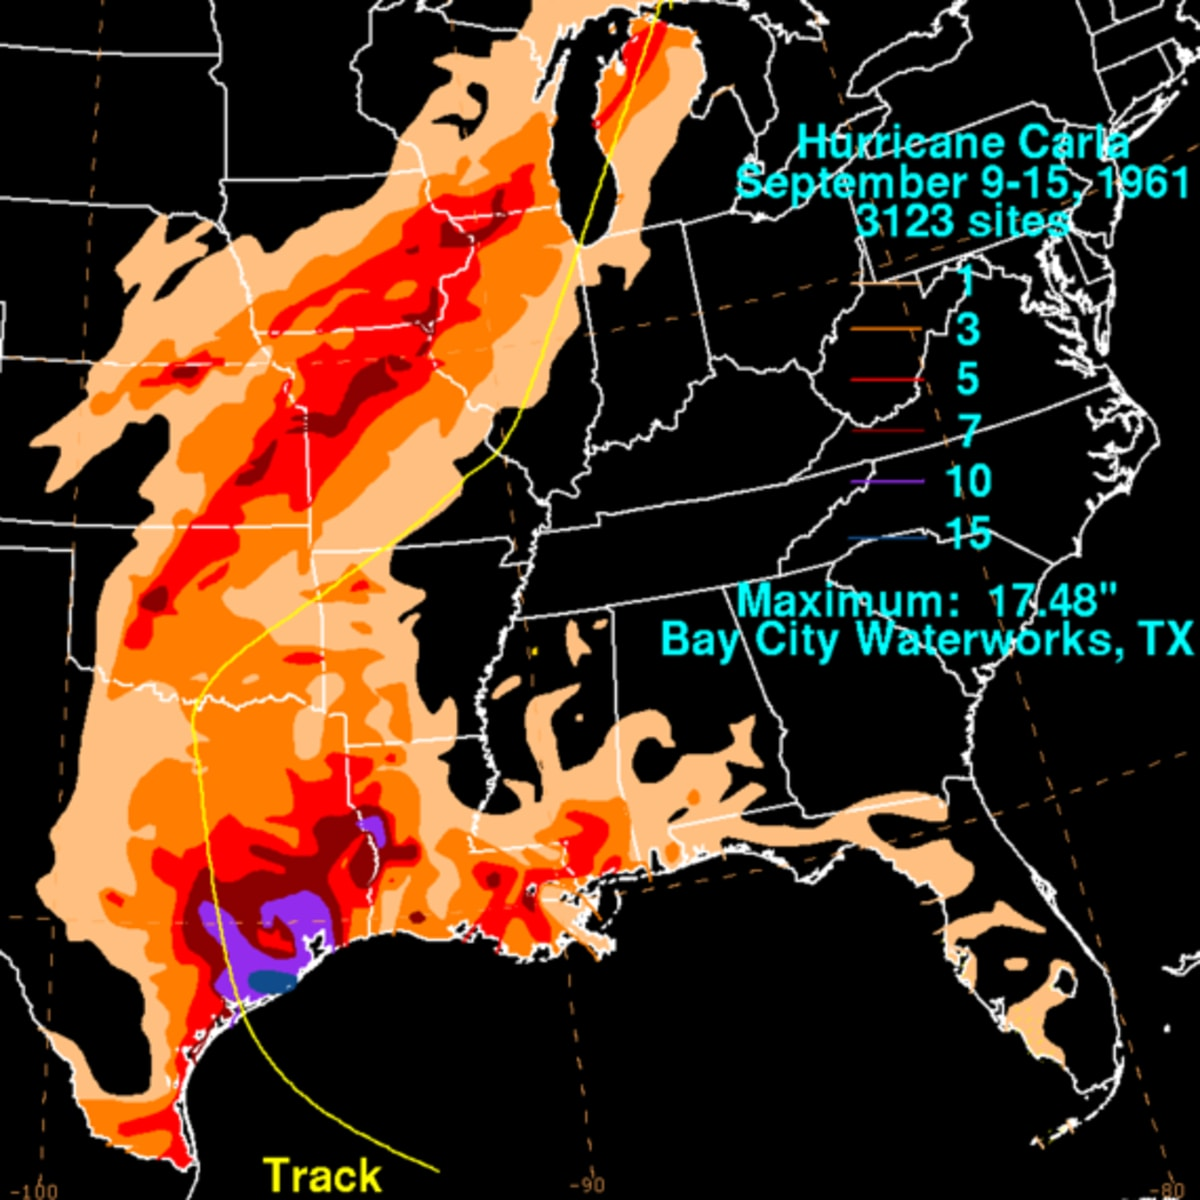 Hurricane Carla rainfall map